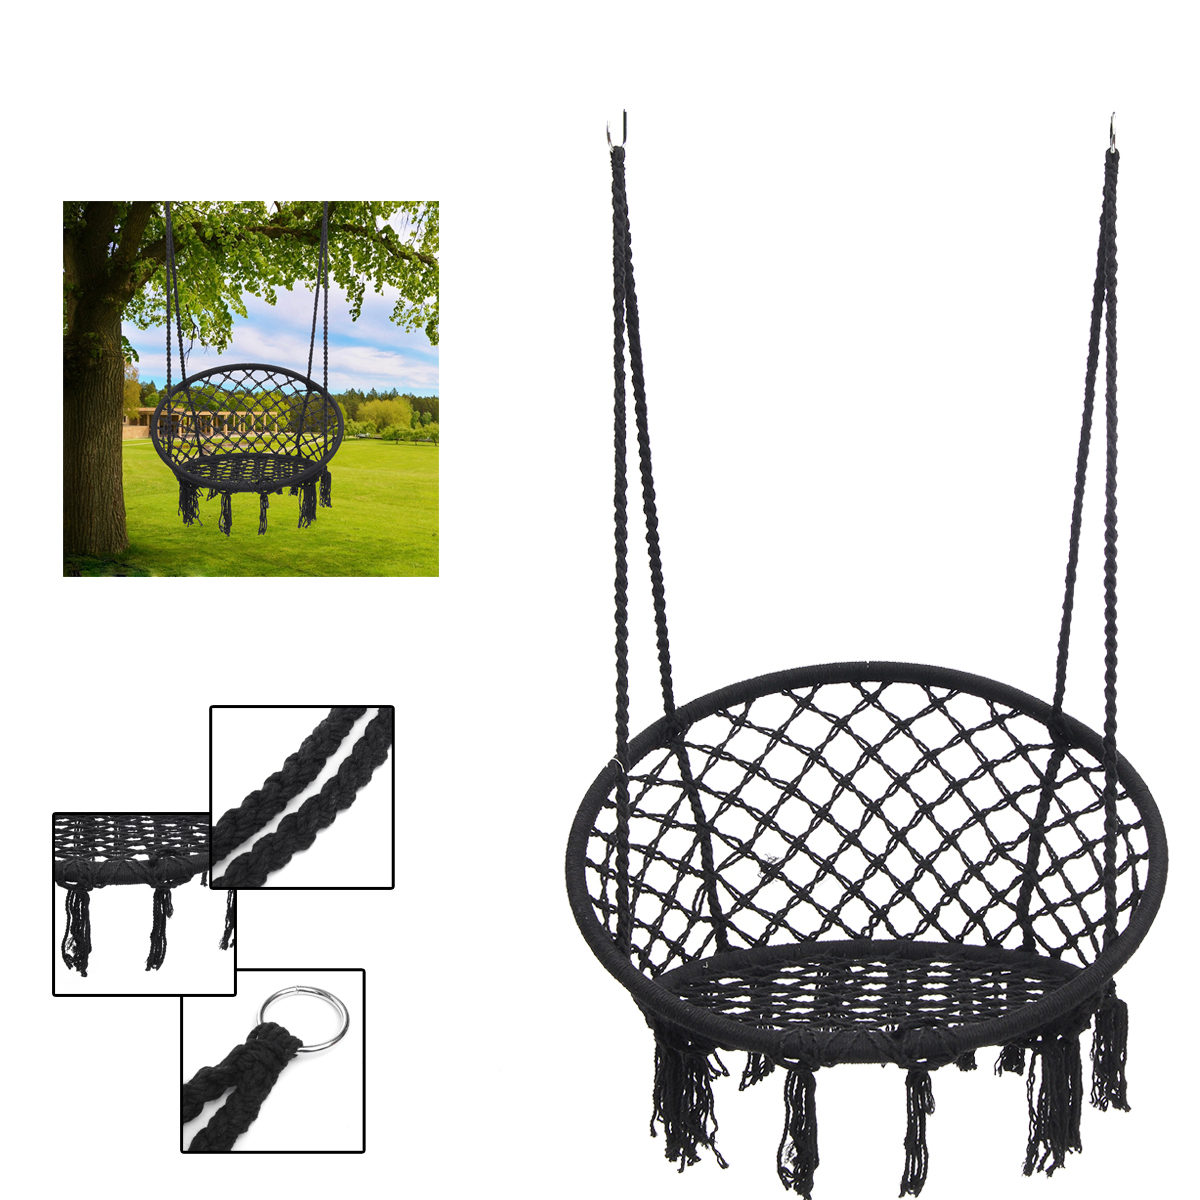 Outdoor Home Garden Round Hammock Hanging Chair Dormitory Bedroom Indoor Safety Swinging Chair For Child Adult